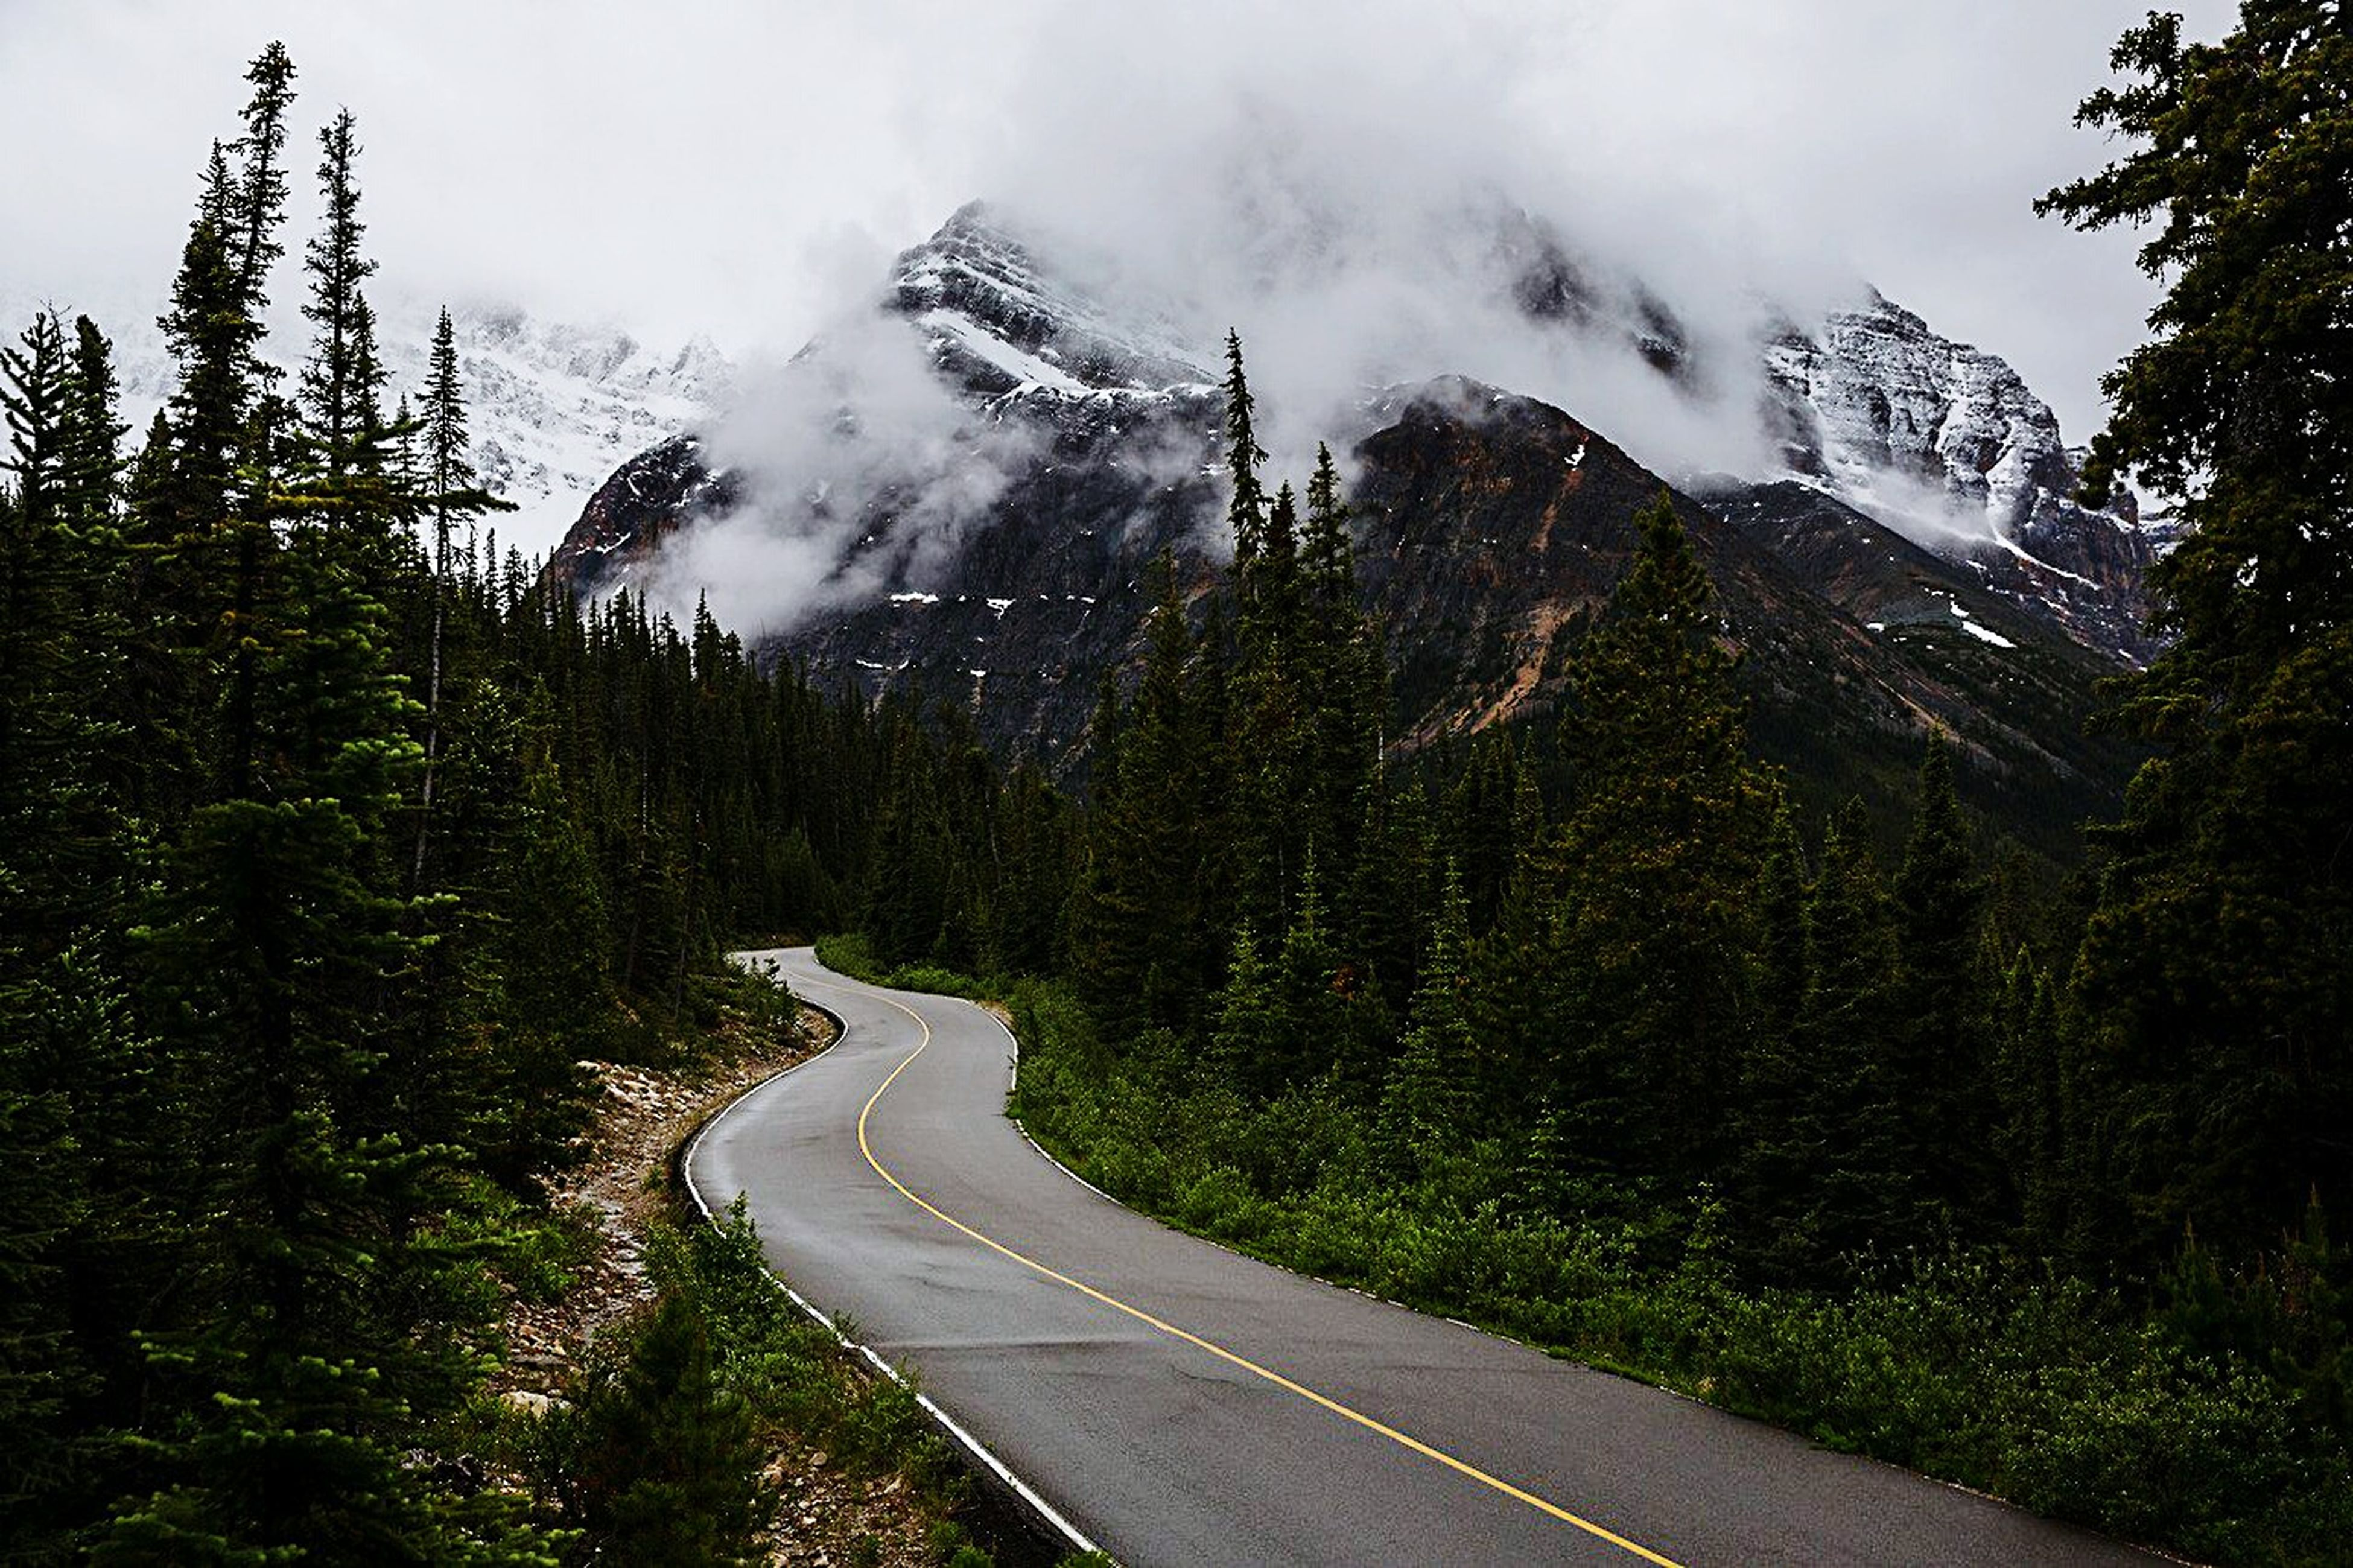 mountain, winding road, curve, nature, road, mountain range, beauty in nature, tree, transportation, landscape, scenics, no people, mountain road, forest, day, outdoors, sky